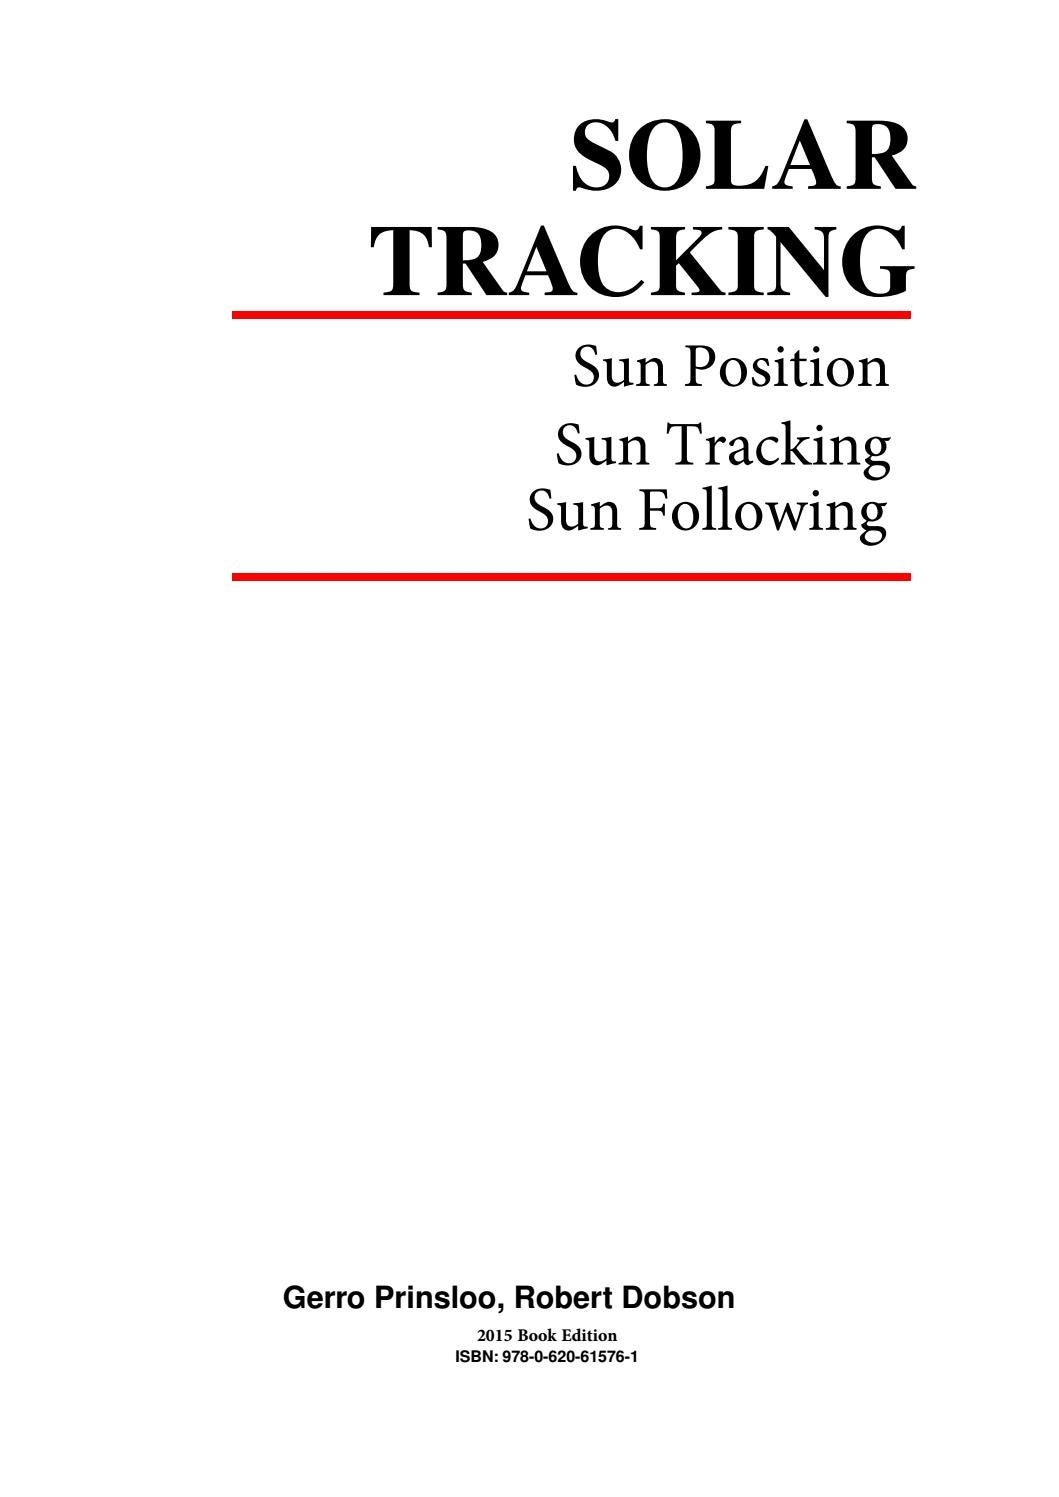 Solar Tracking Hardware N Software Ebook By Gerro J Prinsloo Issuu 348 Conventional Models Basic 12 Volt Wiring Diagram Schematic Ebay